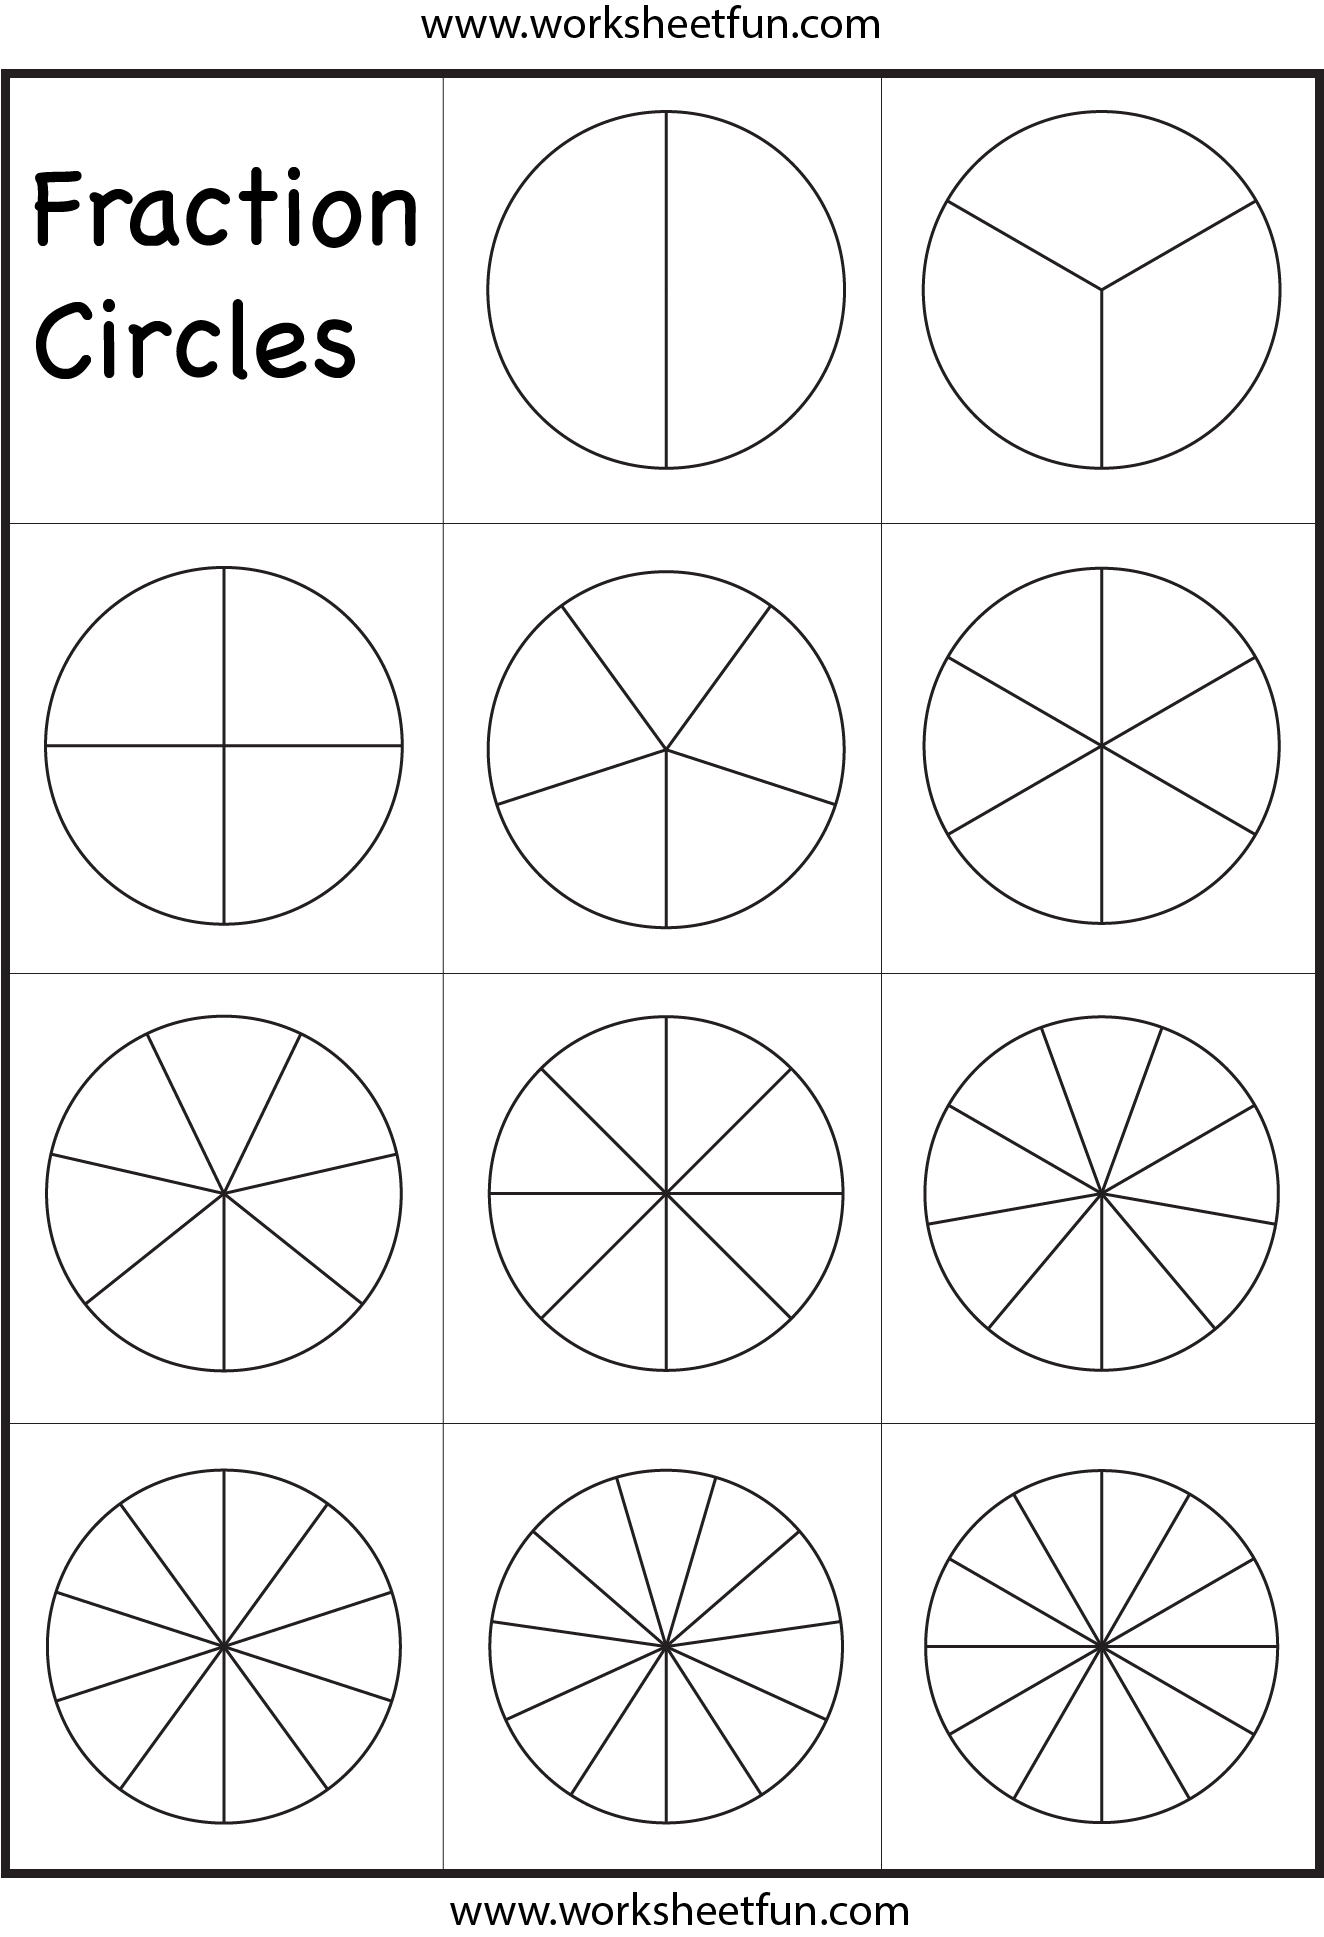 fraction circles worksheet homeschool math higher grade pinterest maths fractions and. Black Bedroom Furniture Sets. Home Design Ideas